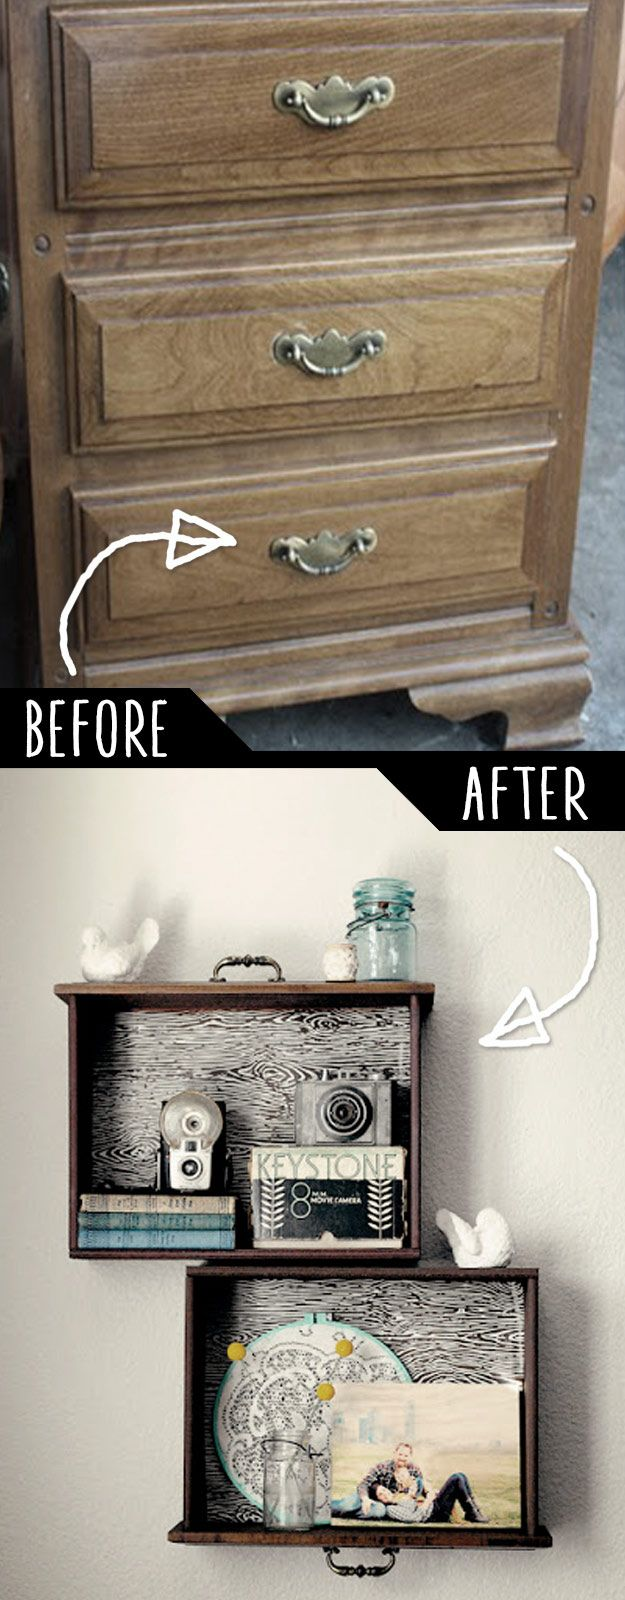 20 amazing diy ideas for furniture 13 deco hogar y decoracin 20 amazing diy ideas for furniture 13 solutioingenieria Gallery